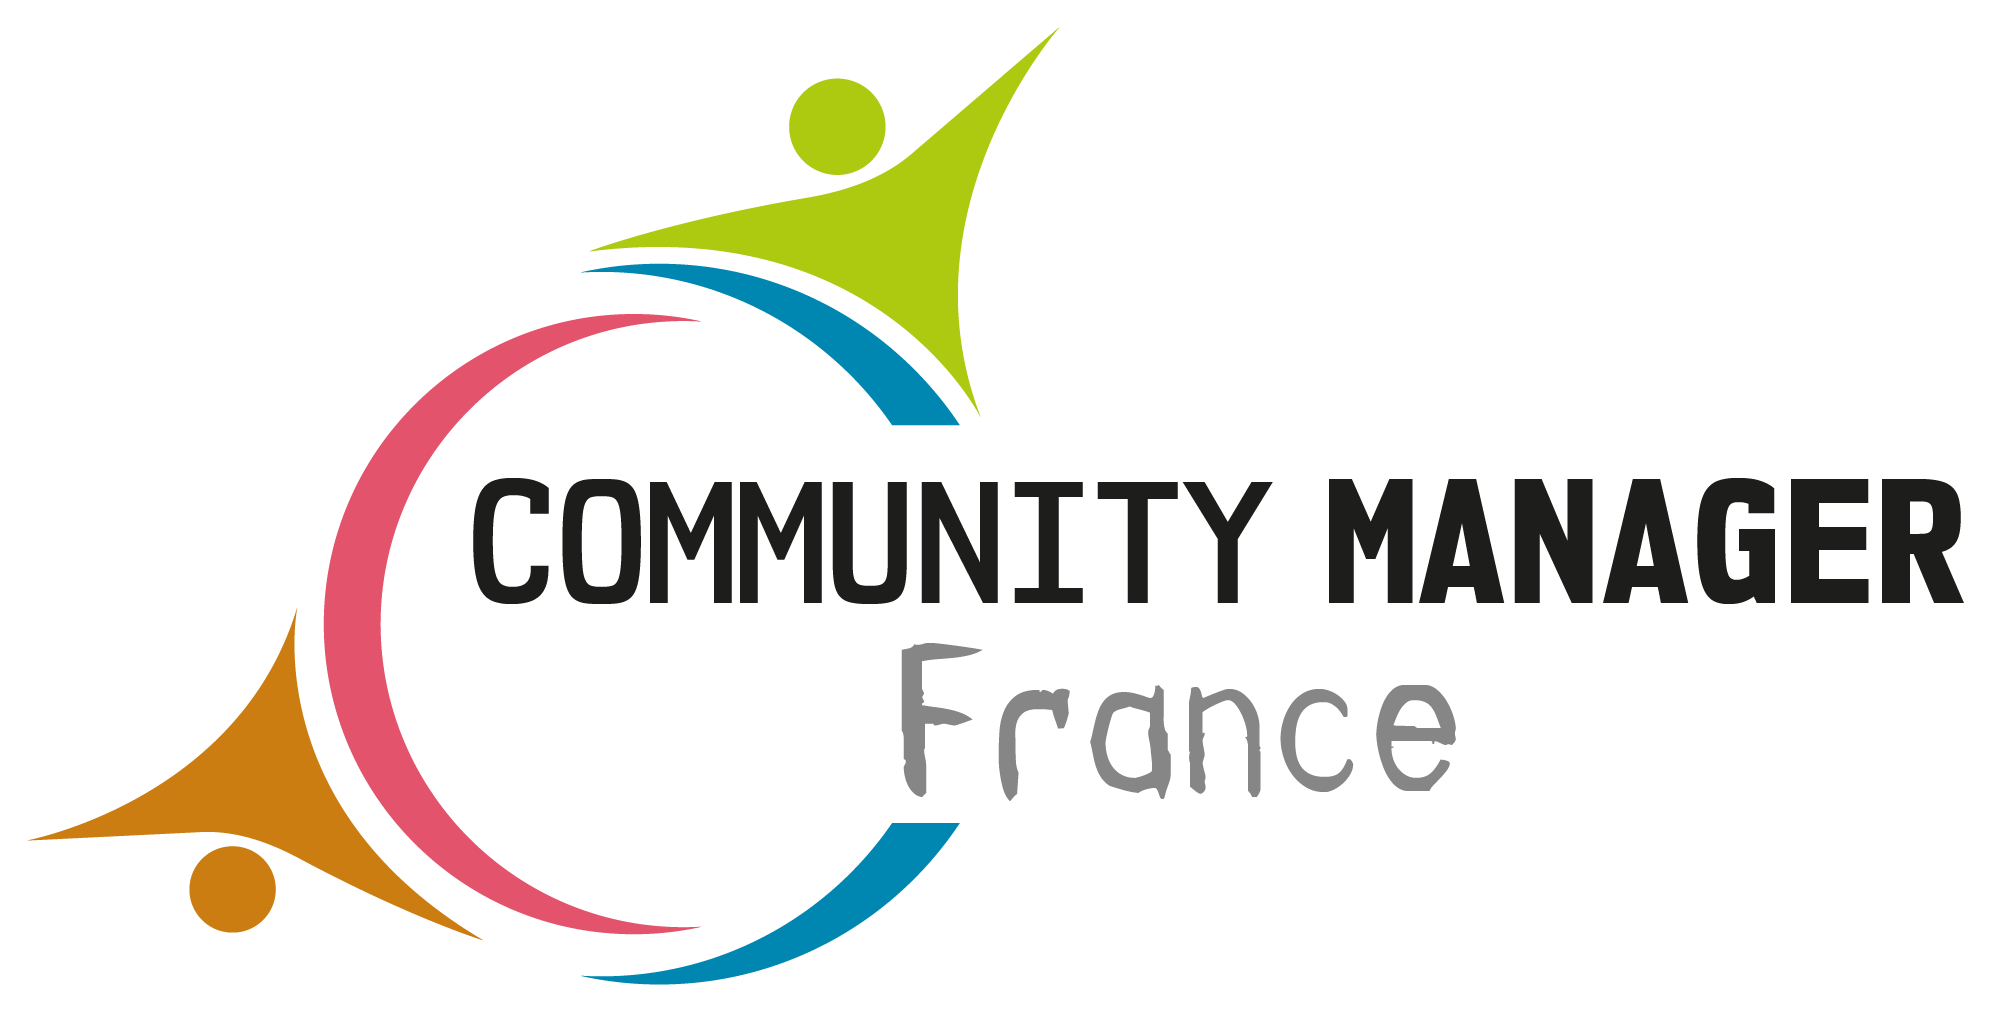 Community Manager France